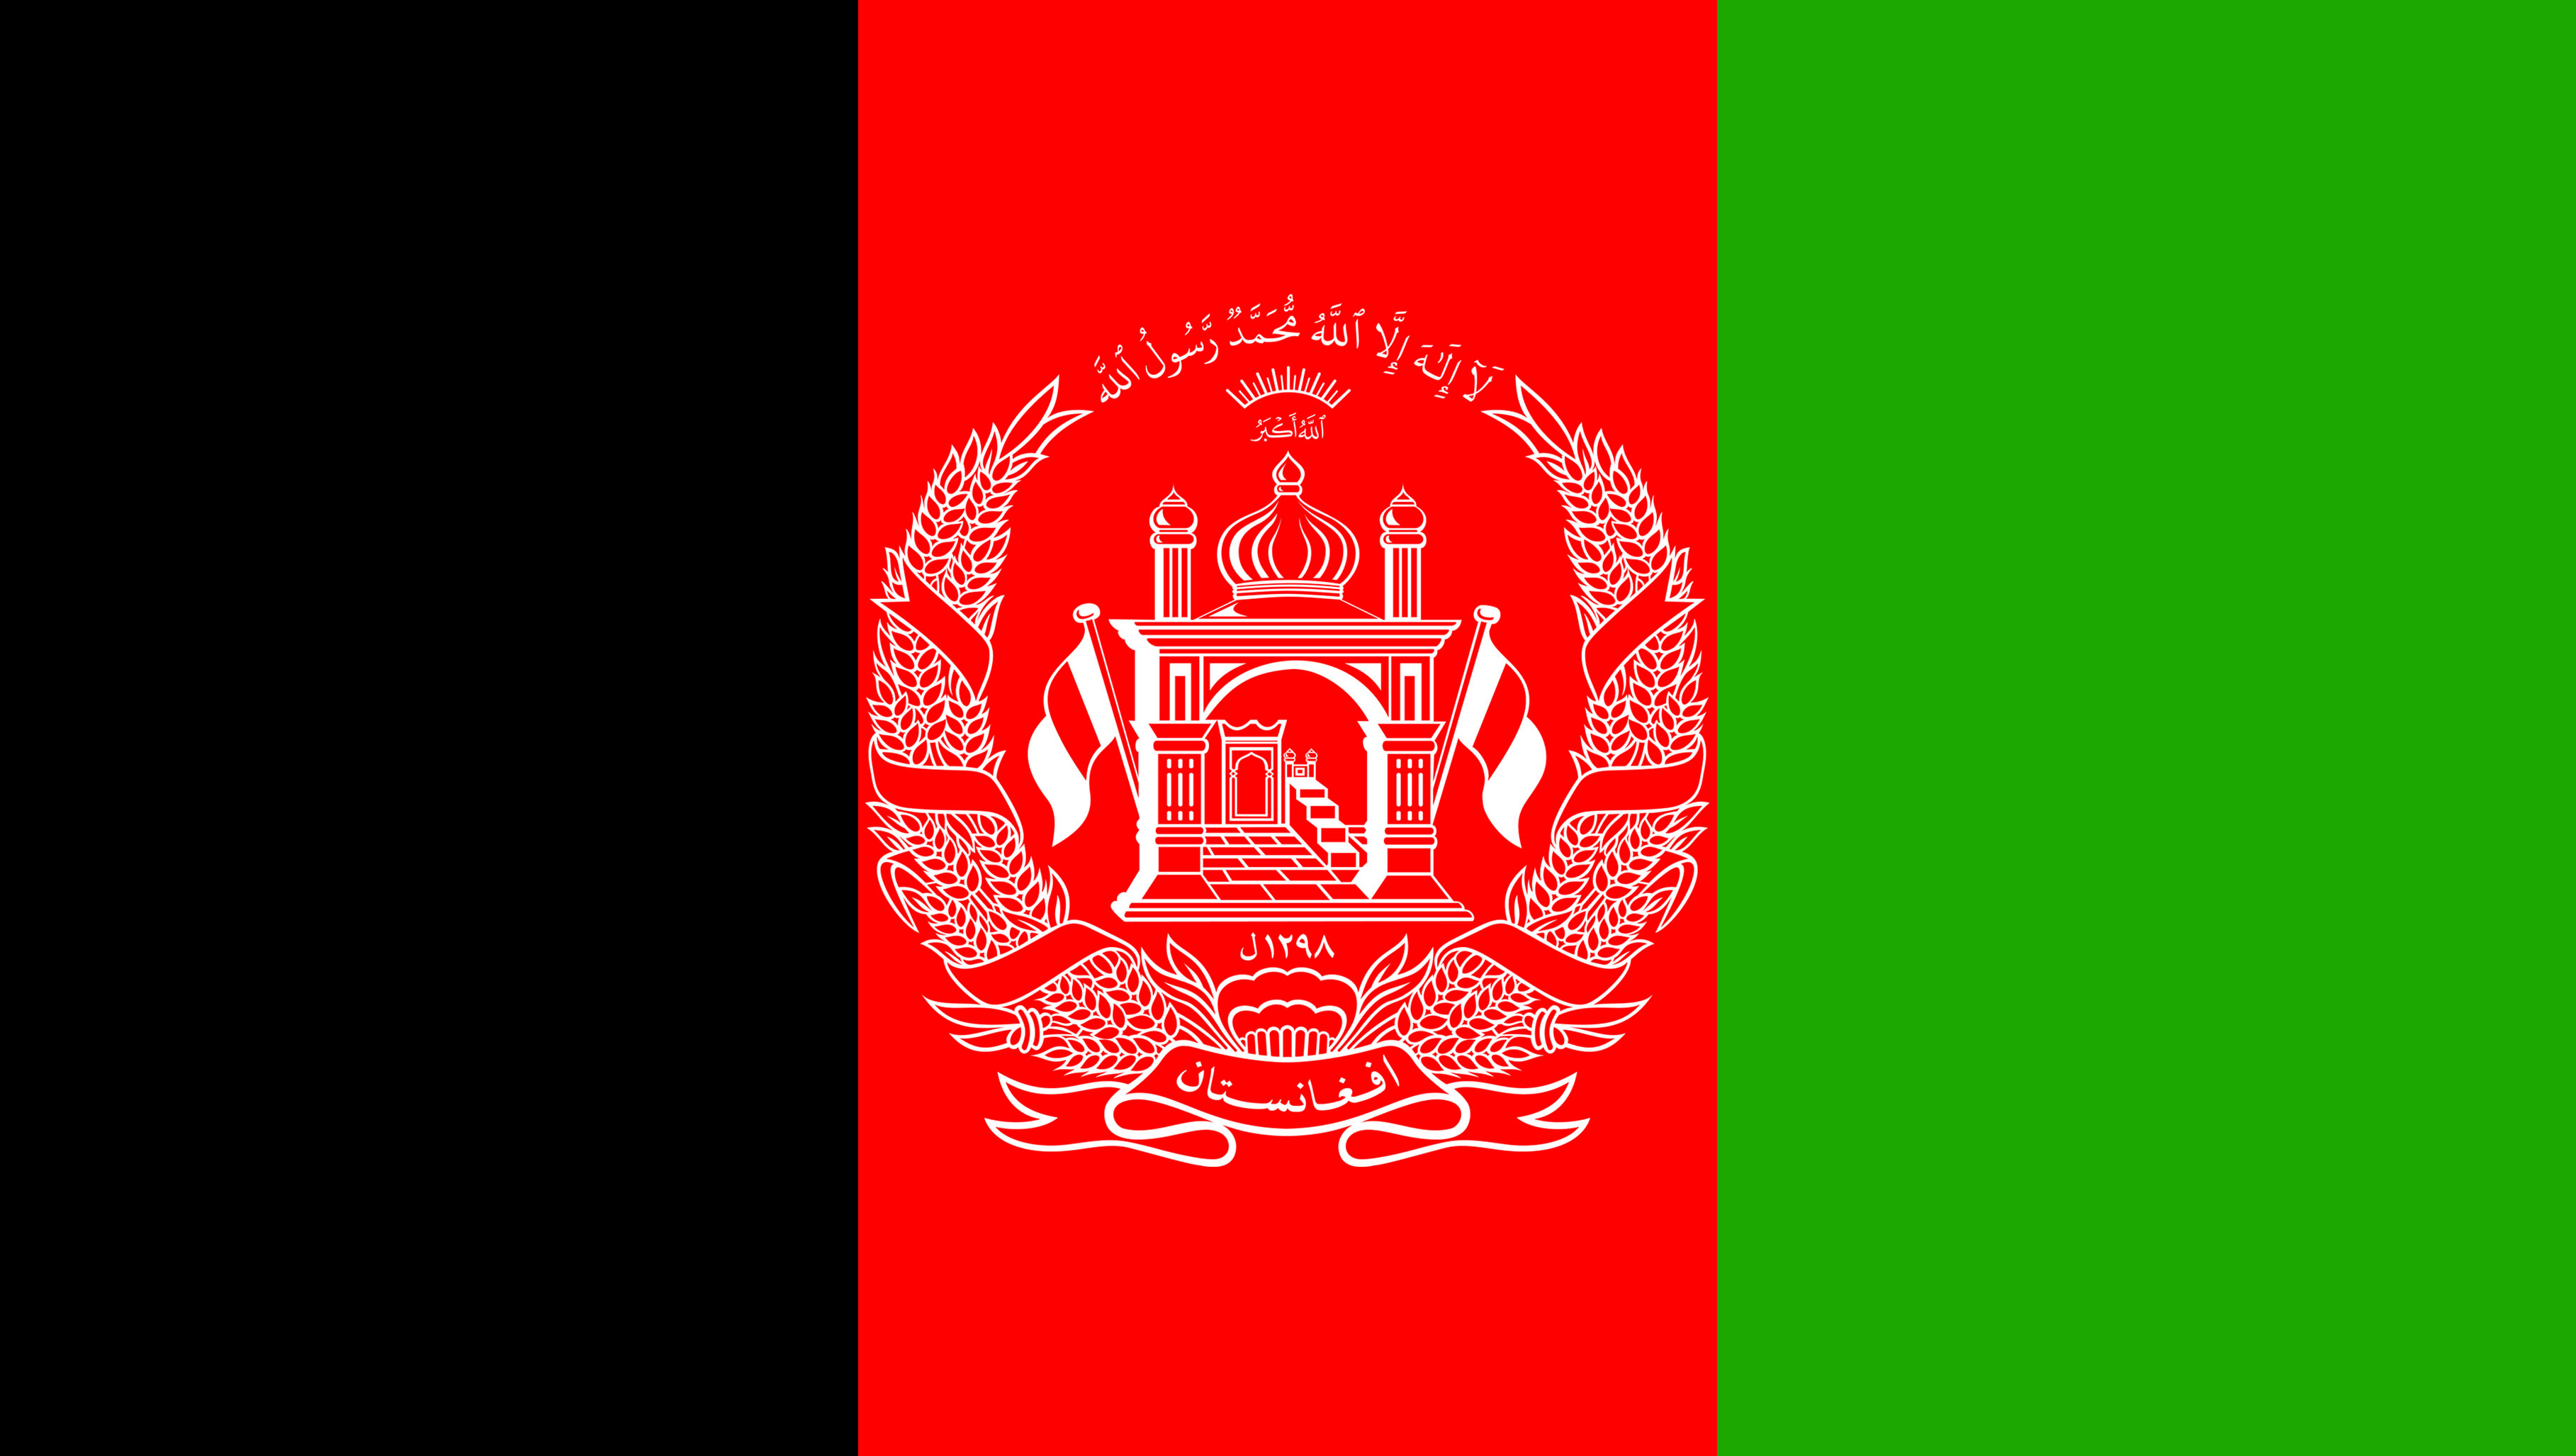 Afghanistan Online: Flags of Afghanistan